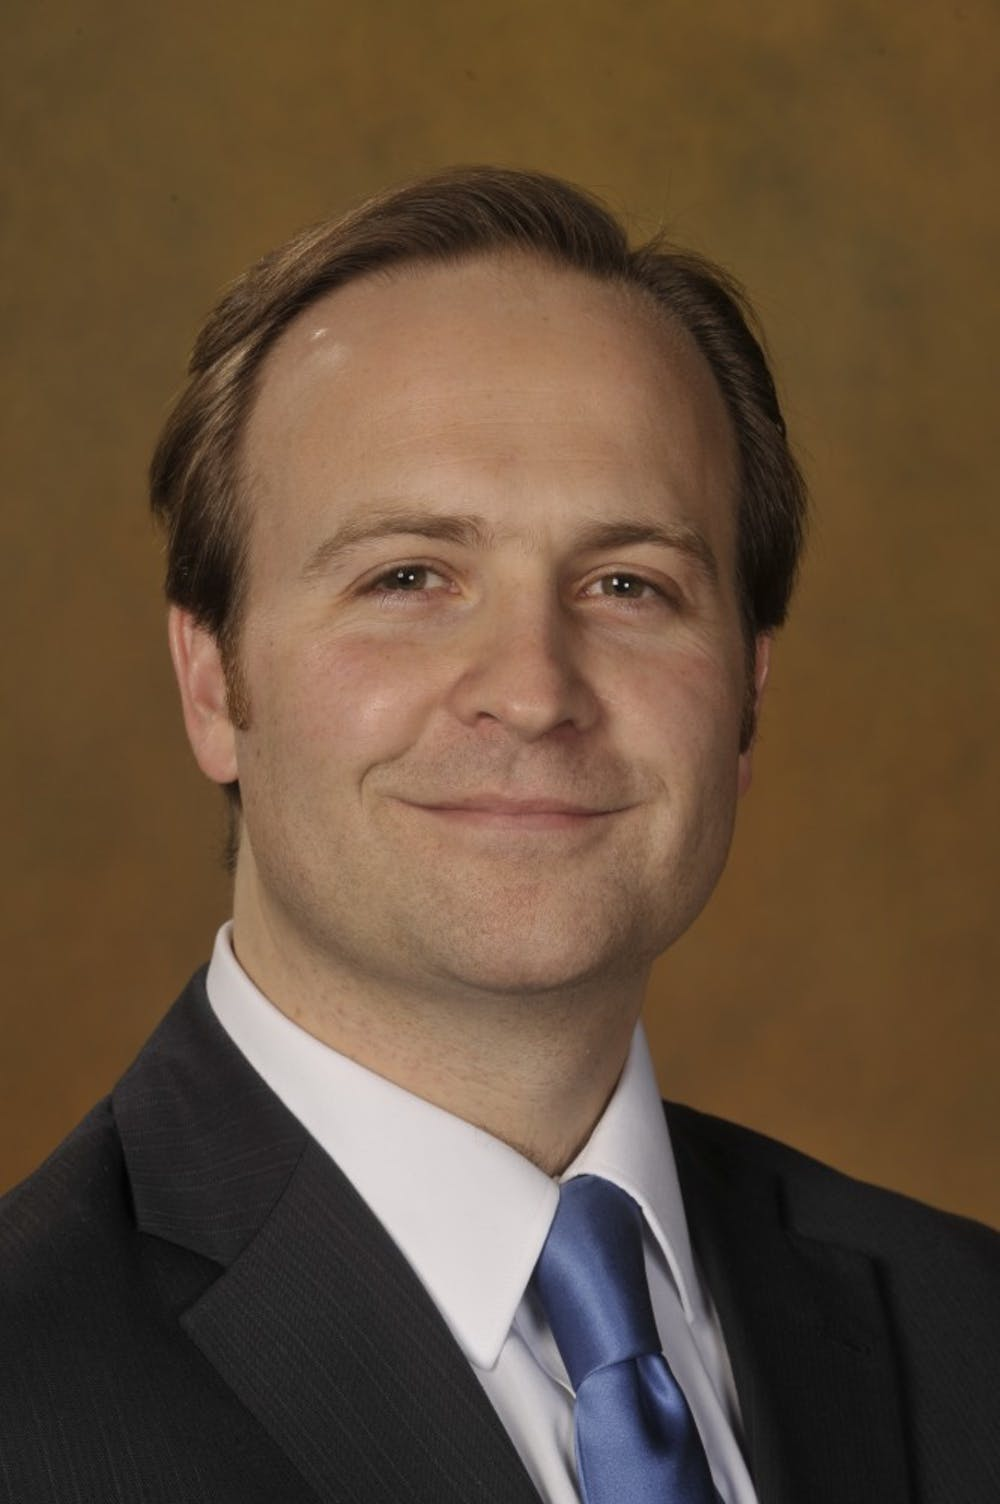 Lt. Governor Calley explains how Michigan is still strong